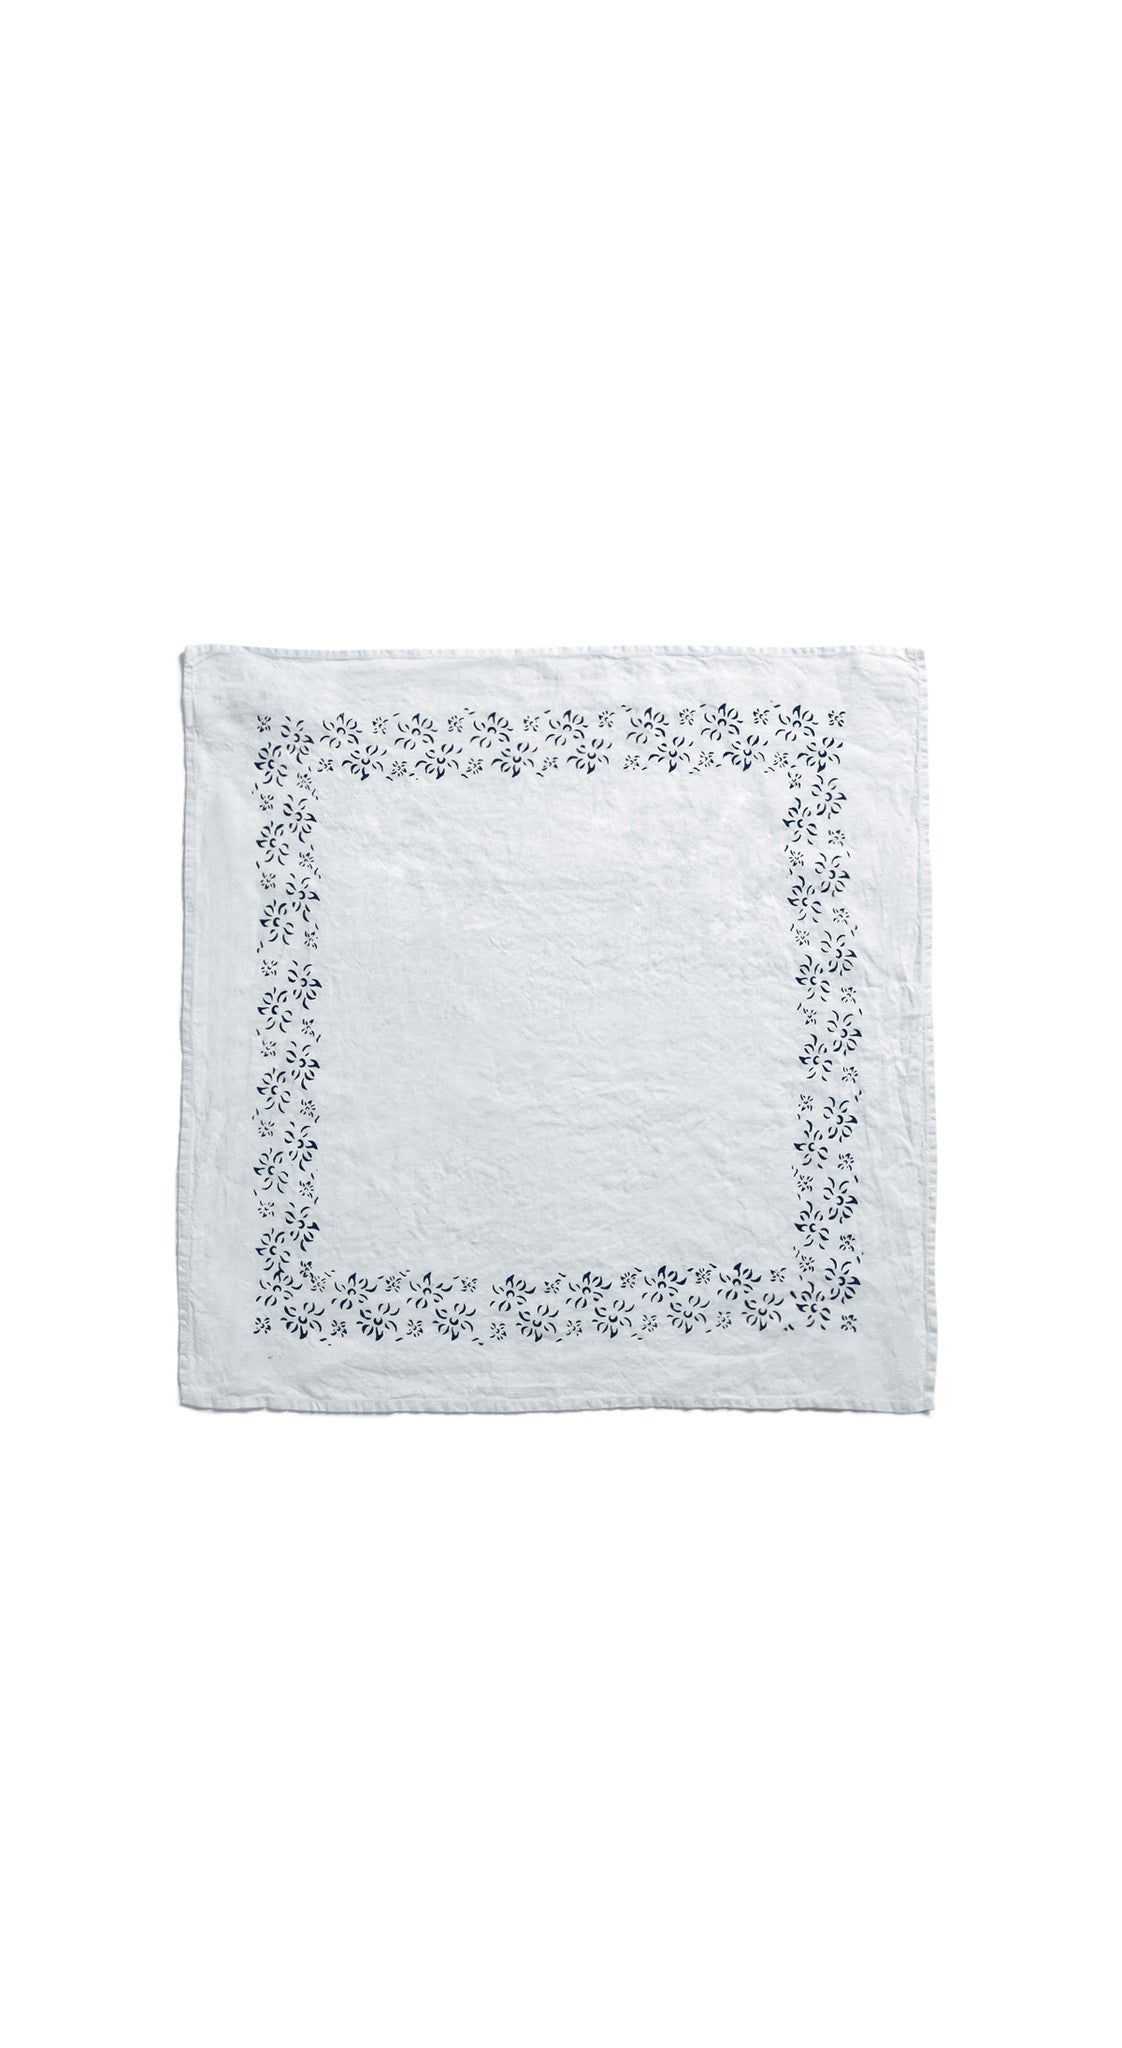 Bernadette's Framed Flower Linen Napkin in Midnight Blue